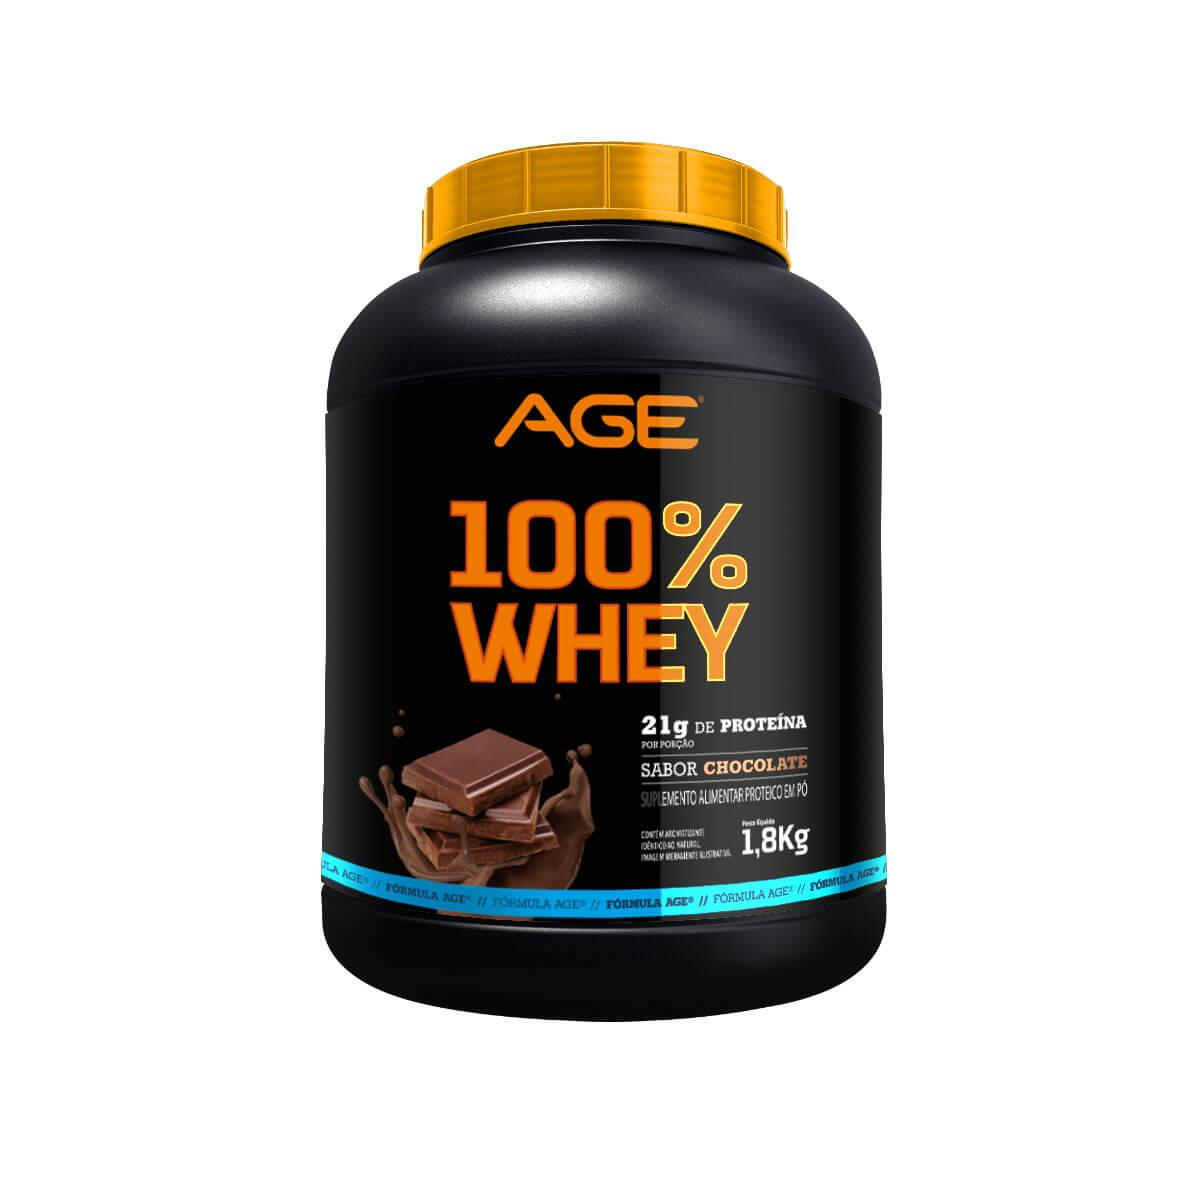 WHEY 100% PURE (1,8Kg) - Chocolate - AGE